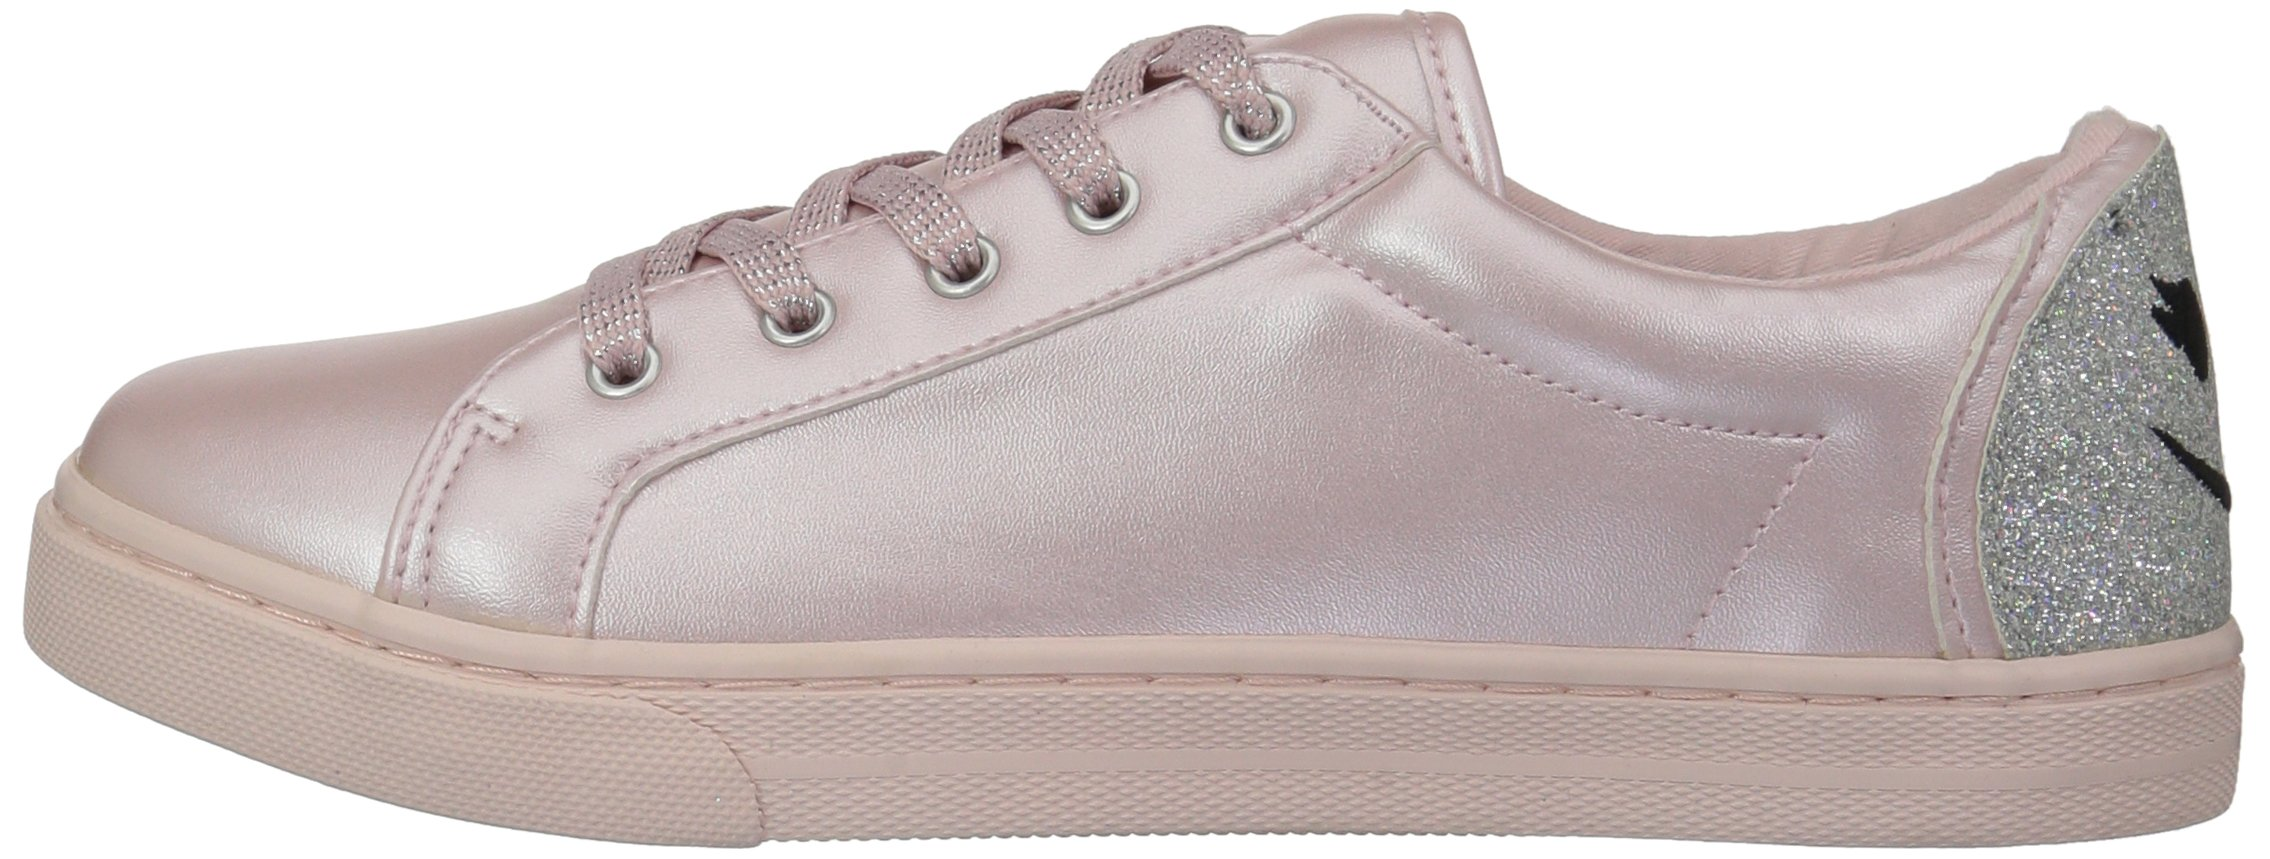 The Children's Place Girls' BG Emoji Sneaker, Pink, Youth 4 Medium US Big Kid by The Children's Place (Image #5)